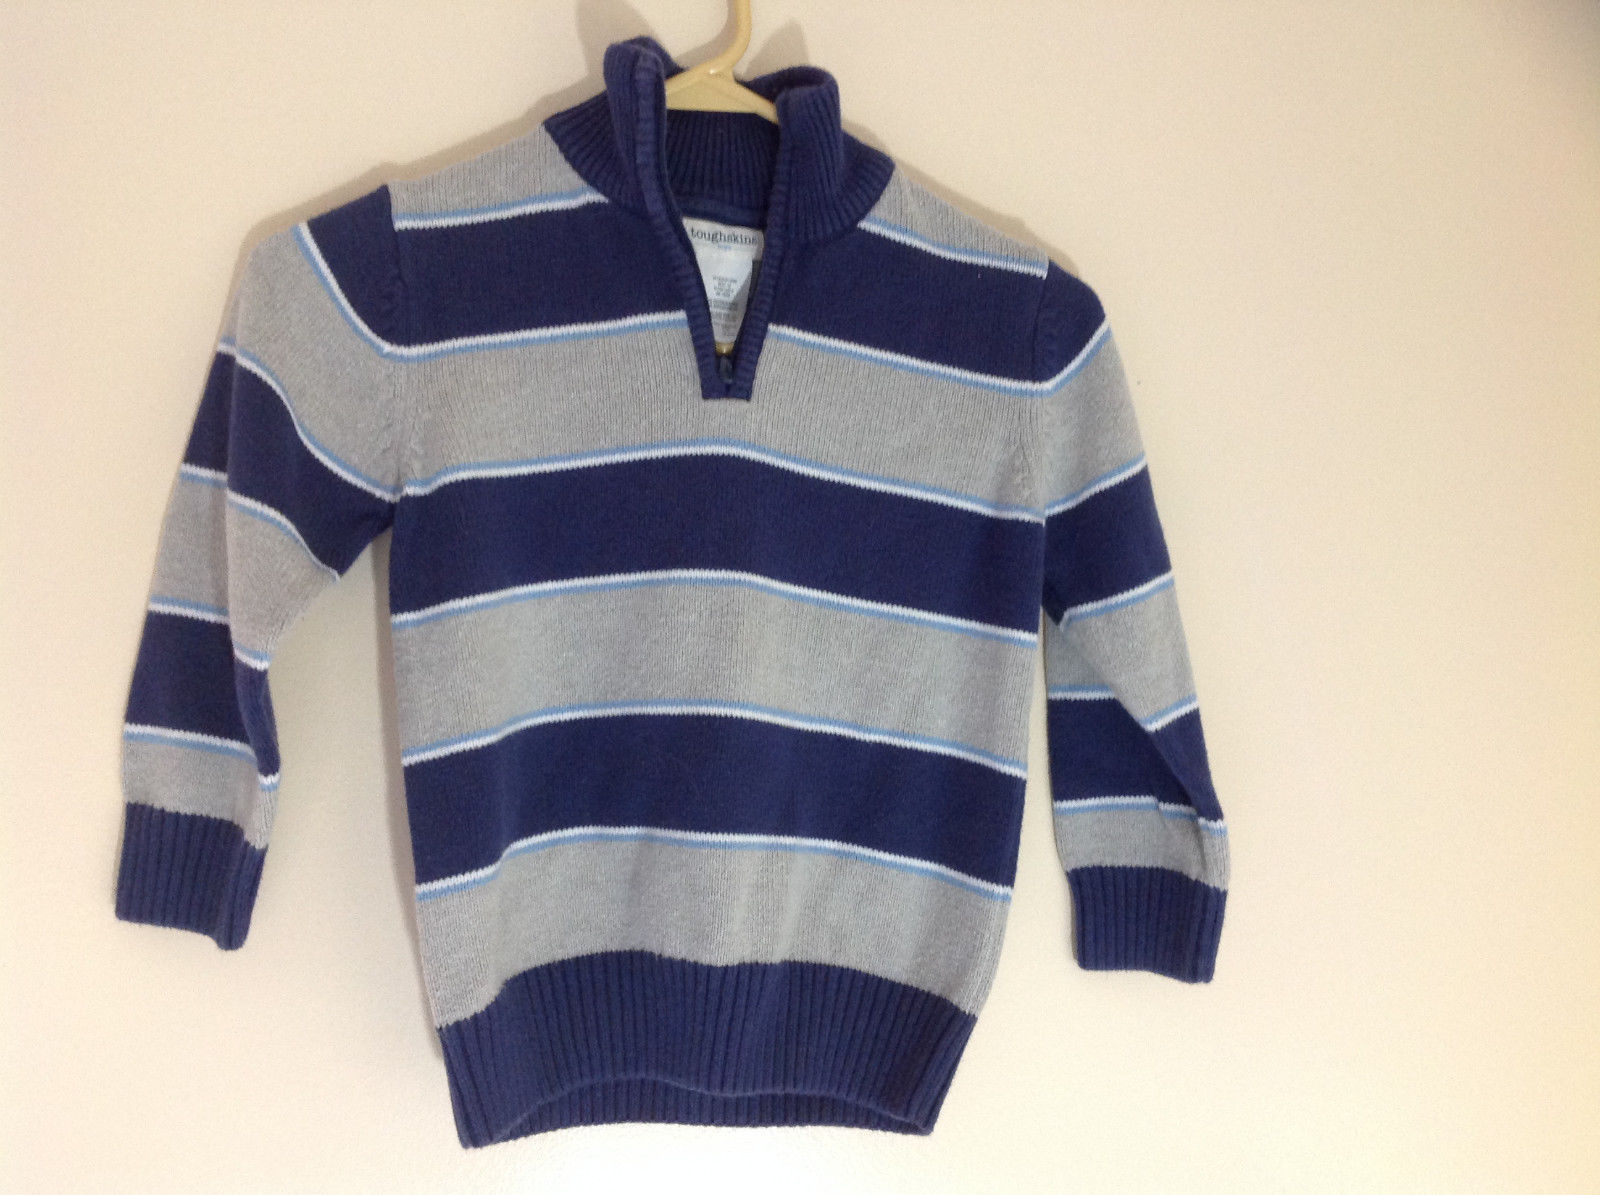 Toughskins Blue Gray Striped Half Zip Up Sweater Turtleneck or Collar Size M